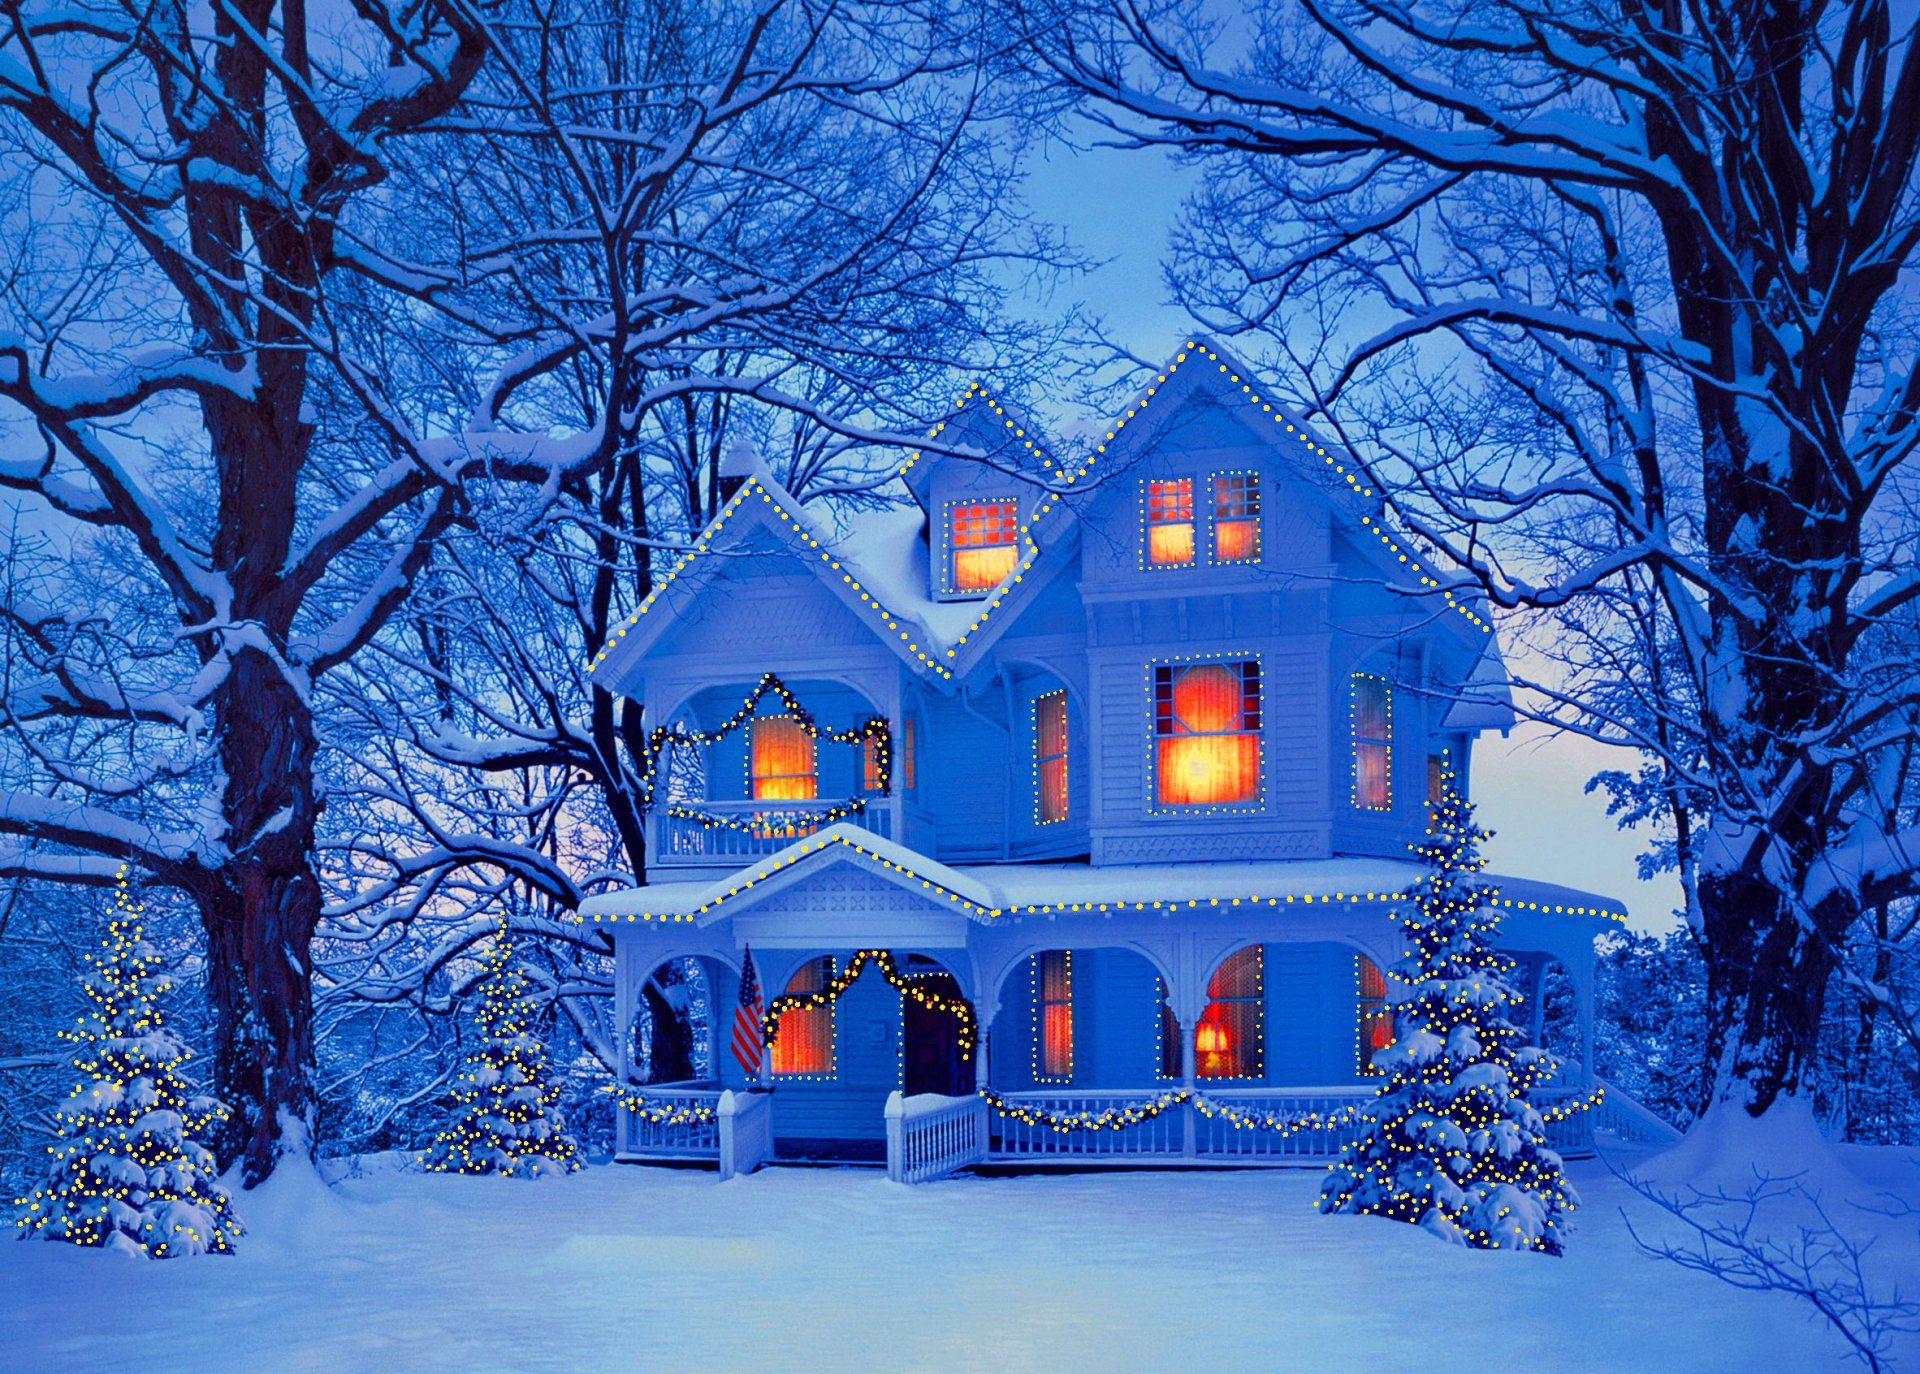 House at Christmastime Full HD Wallpaper and Background ...